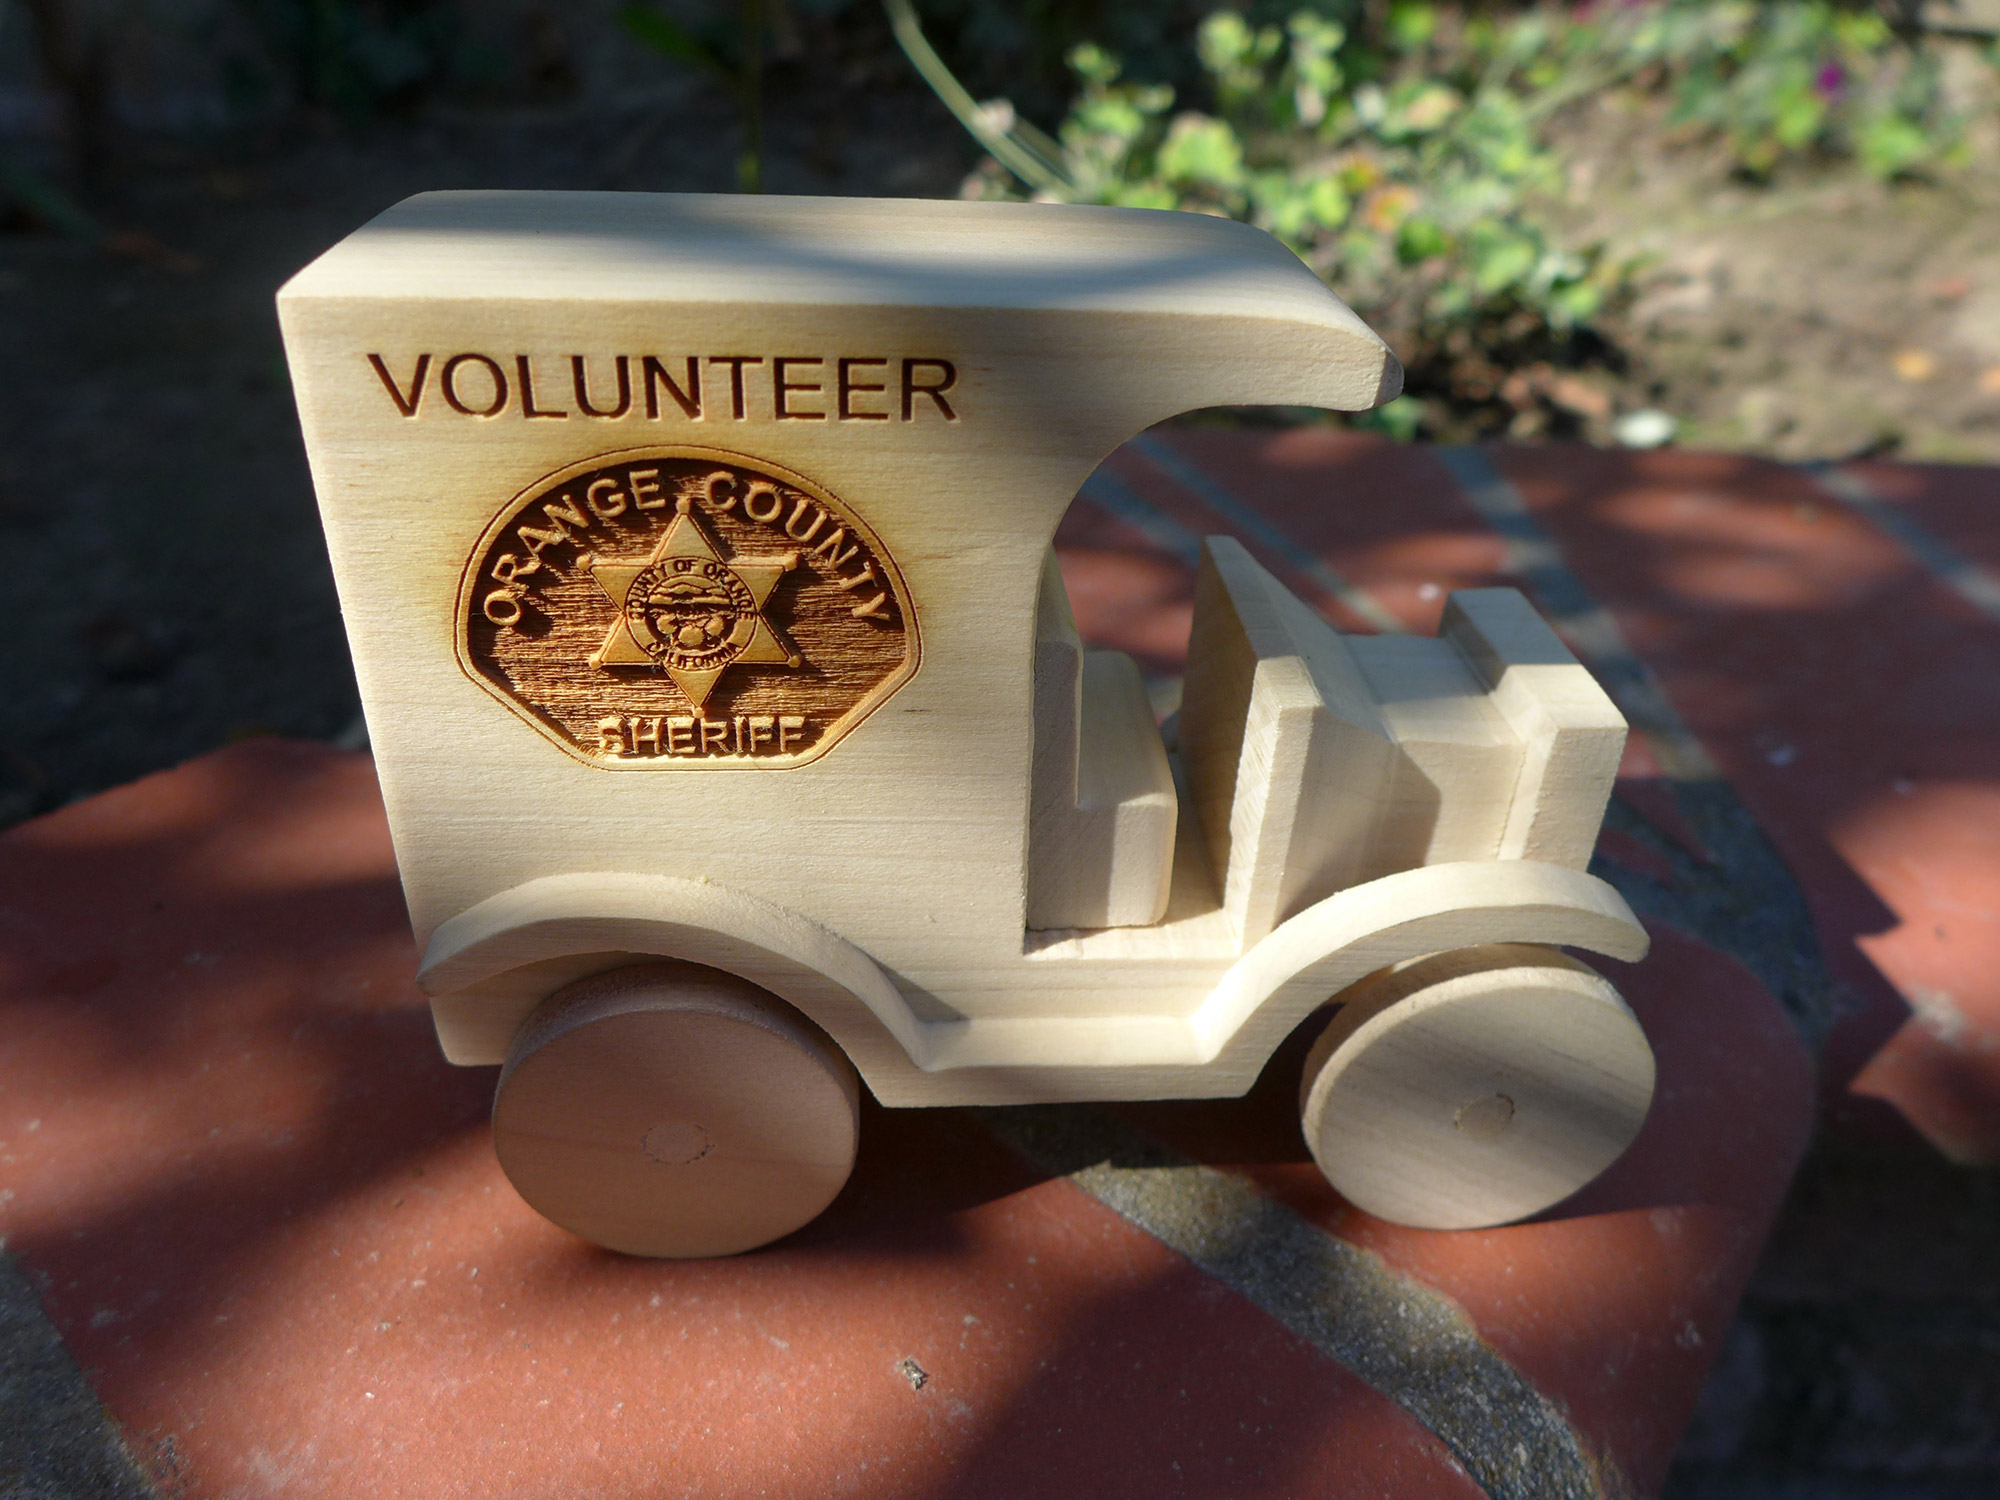 Volunteer Recognition by the Orange County Sheriff